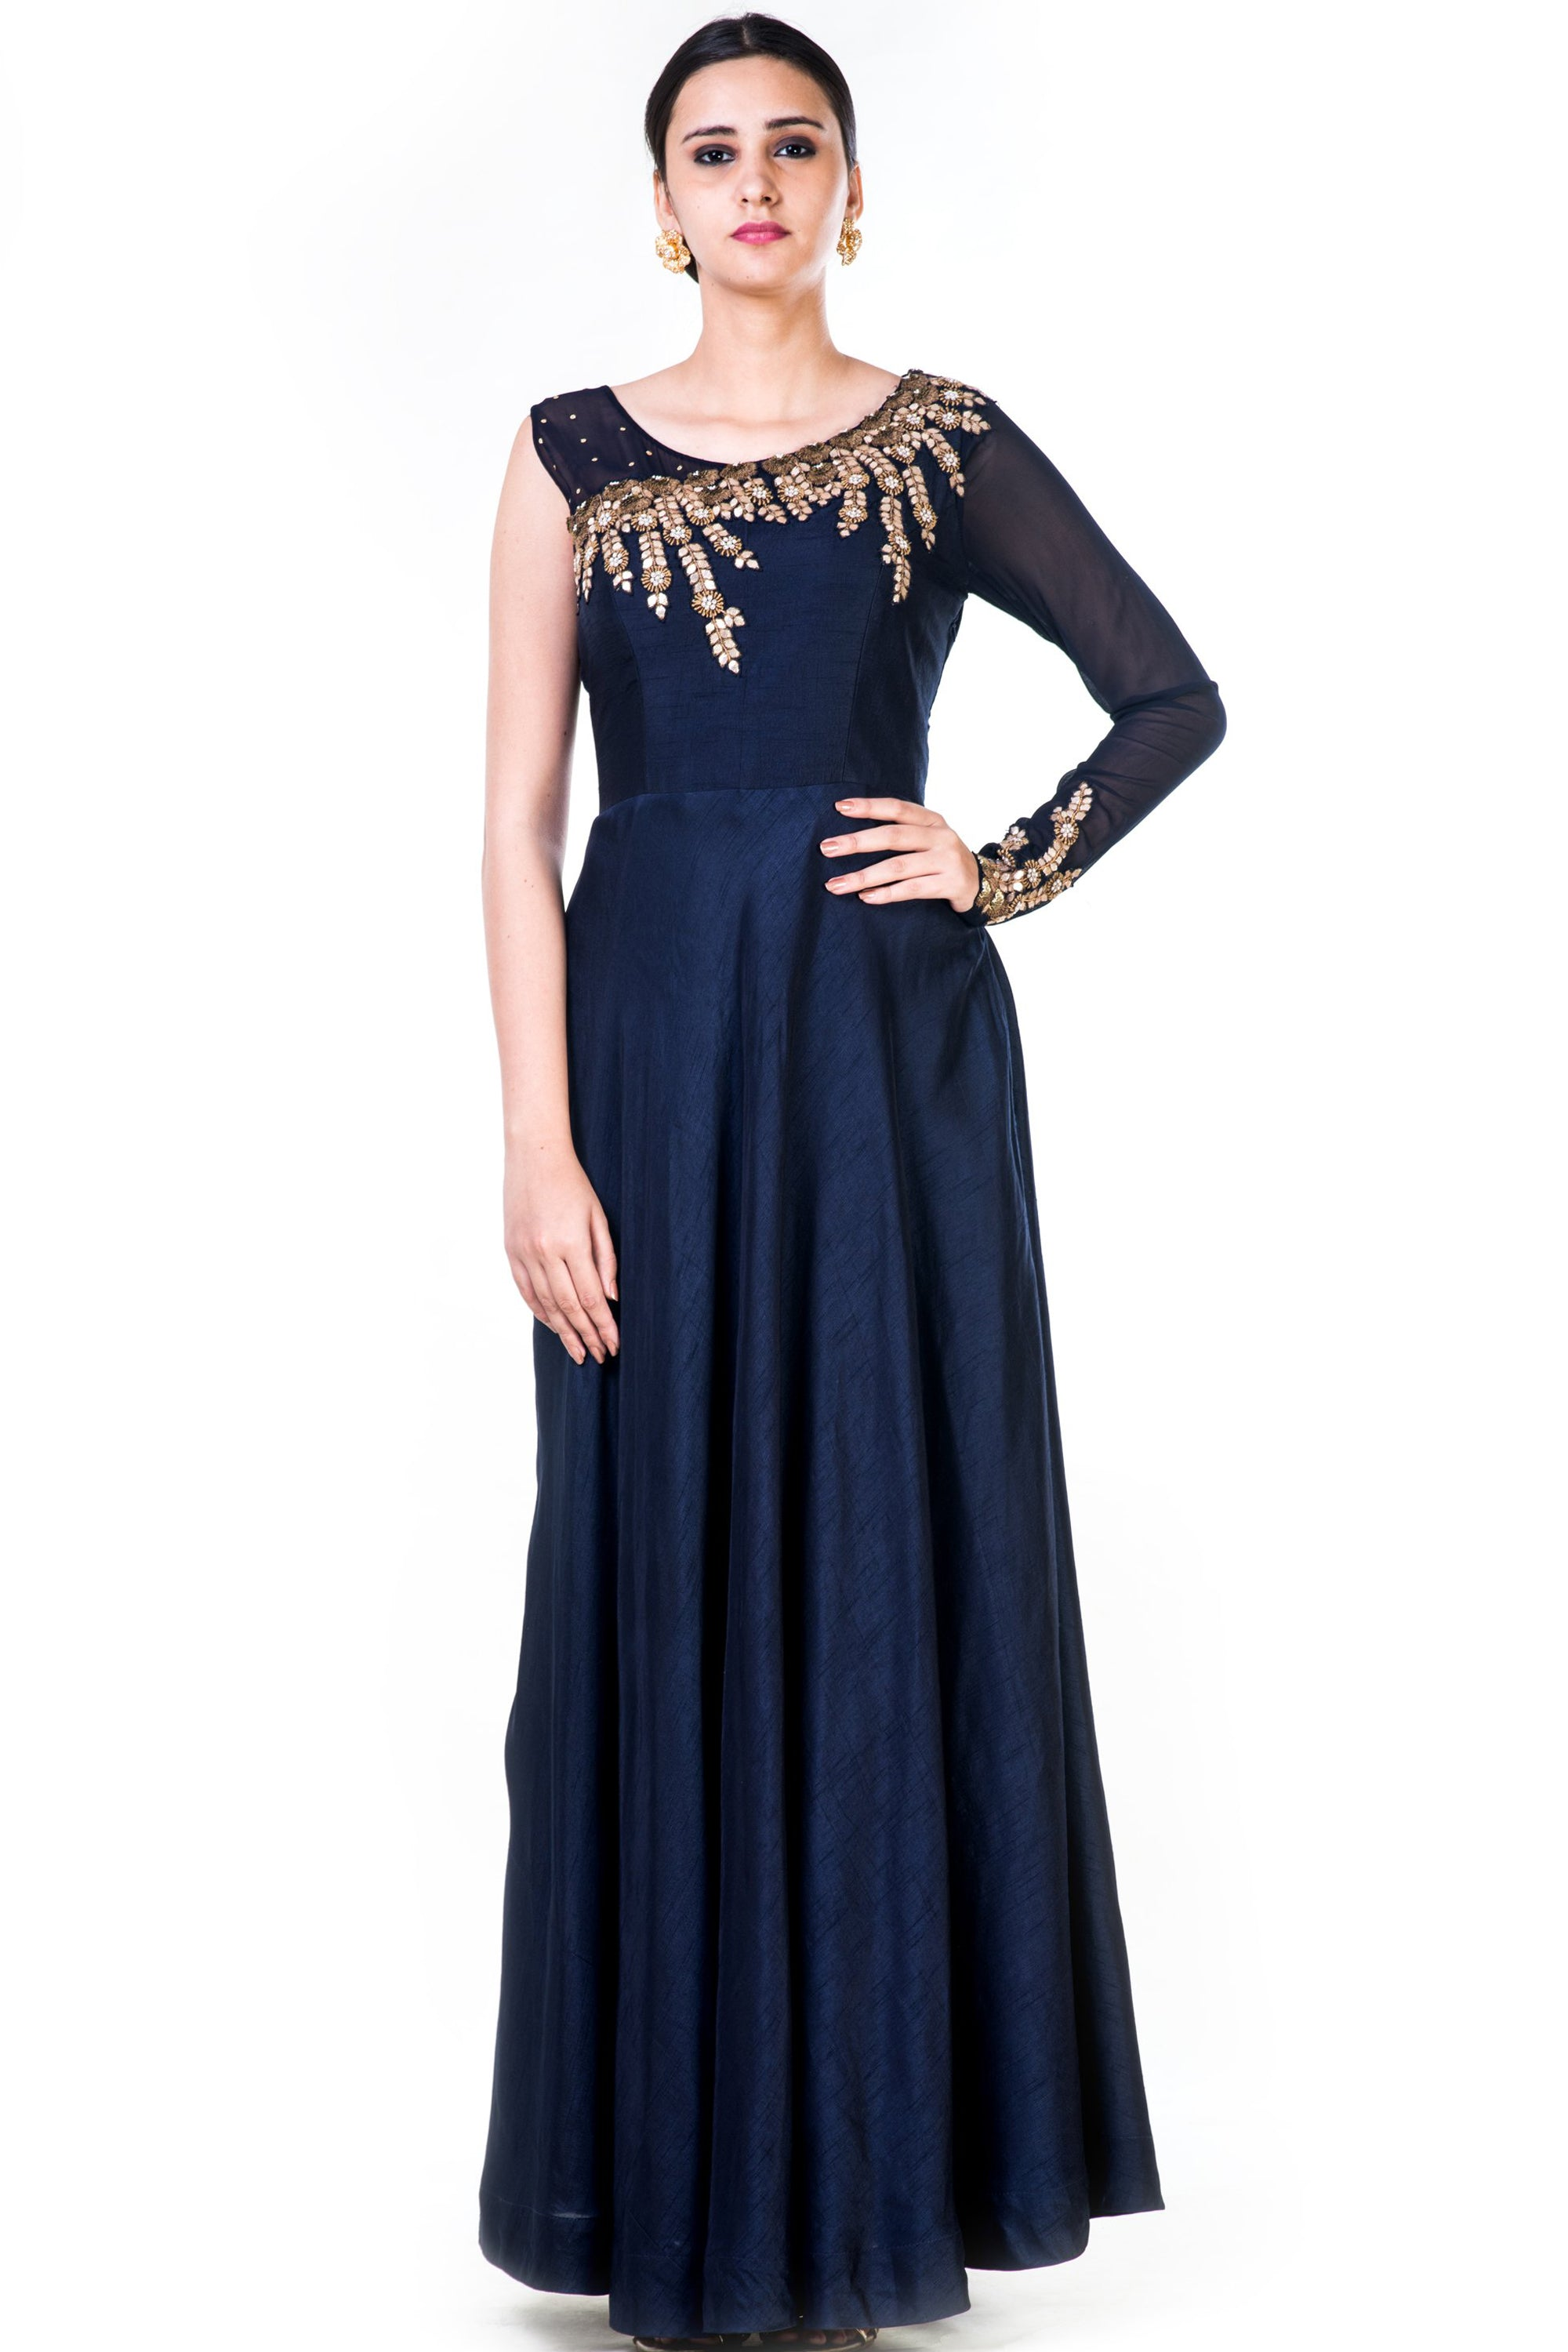 Embroidered Navy Blue One Side Full Sleeves Gown Front